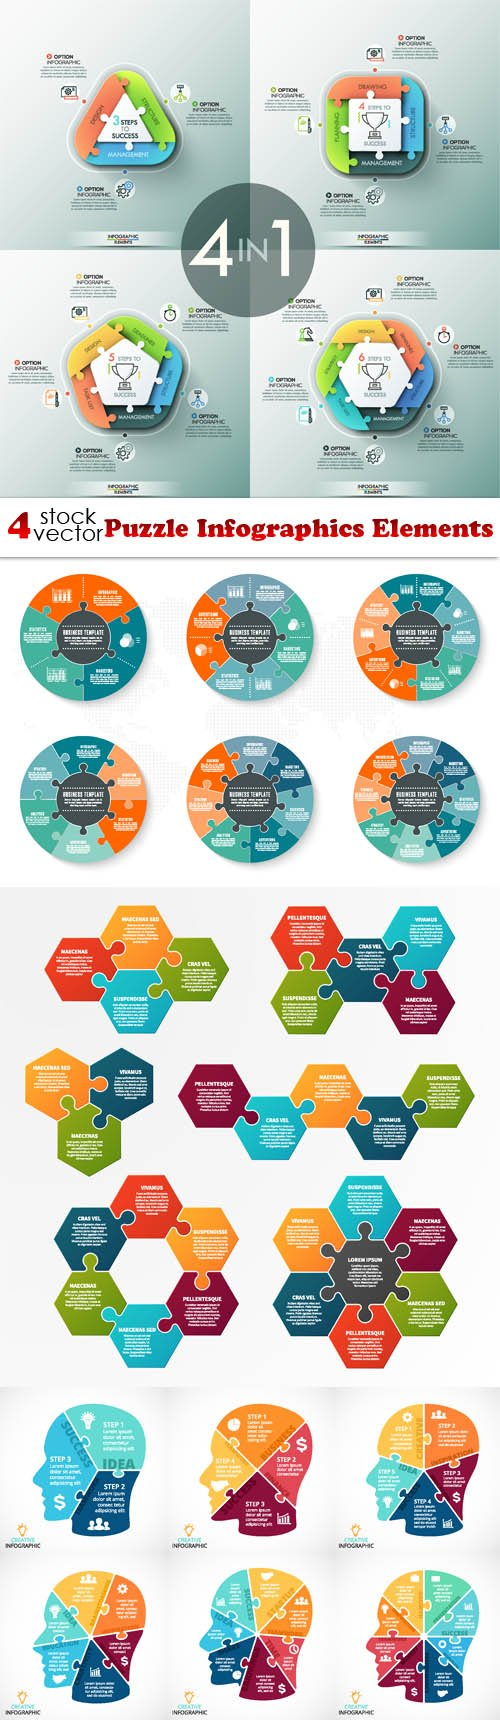 Vectors - Puzzle Infographics Elements